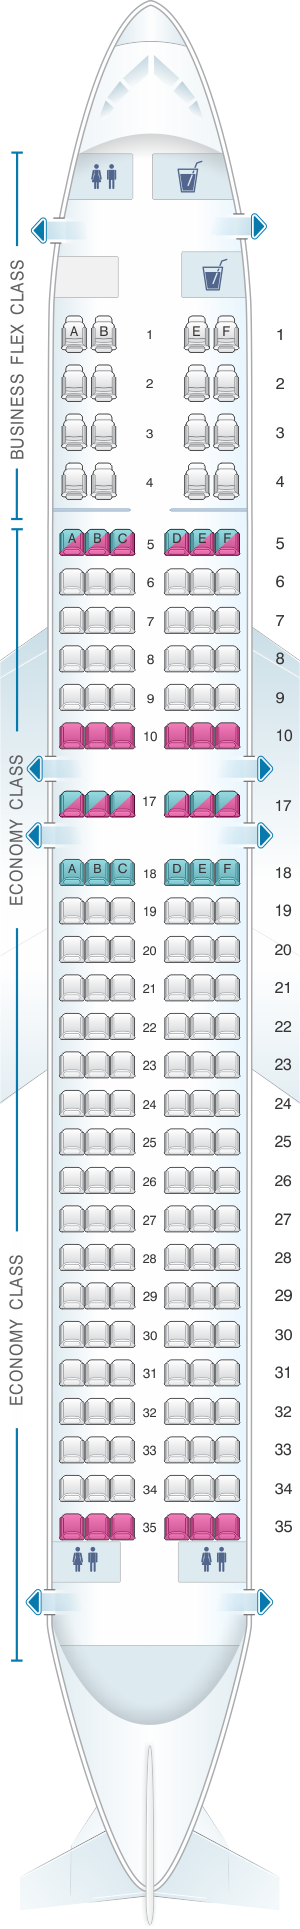 Seat map for Copa Airlines Boeing B737 MAX 9